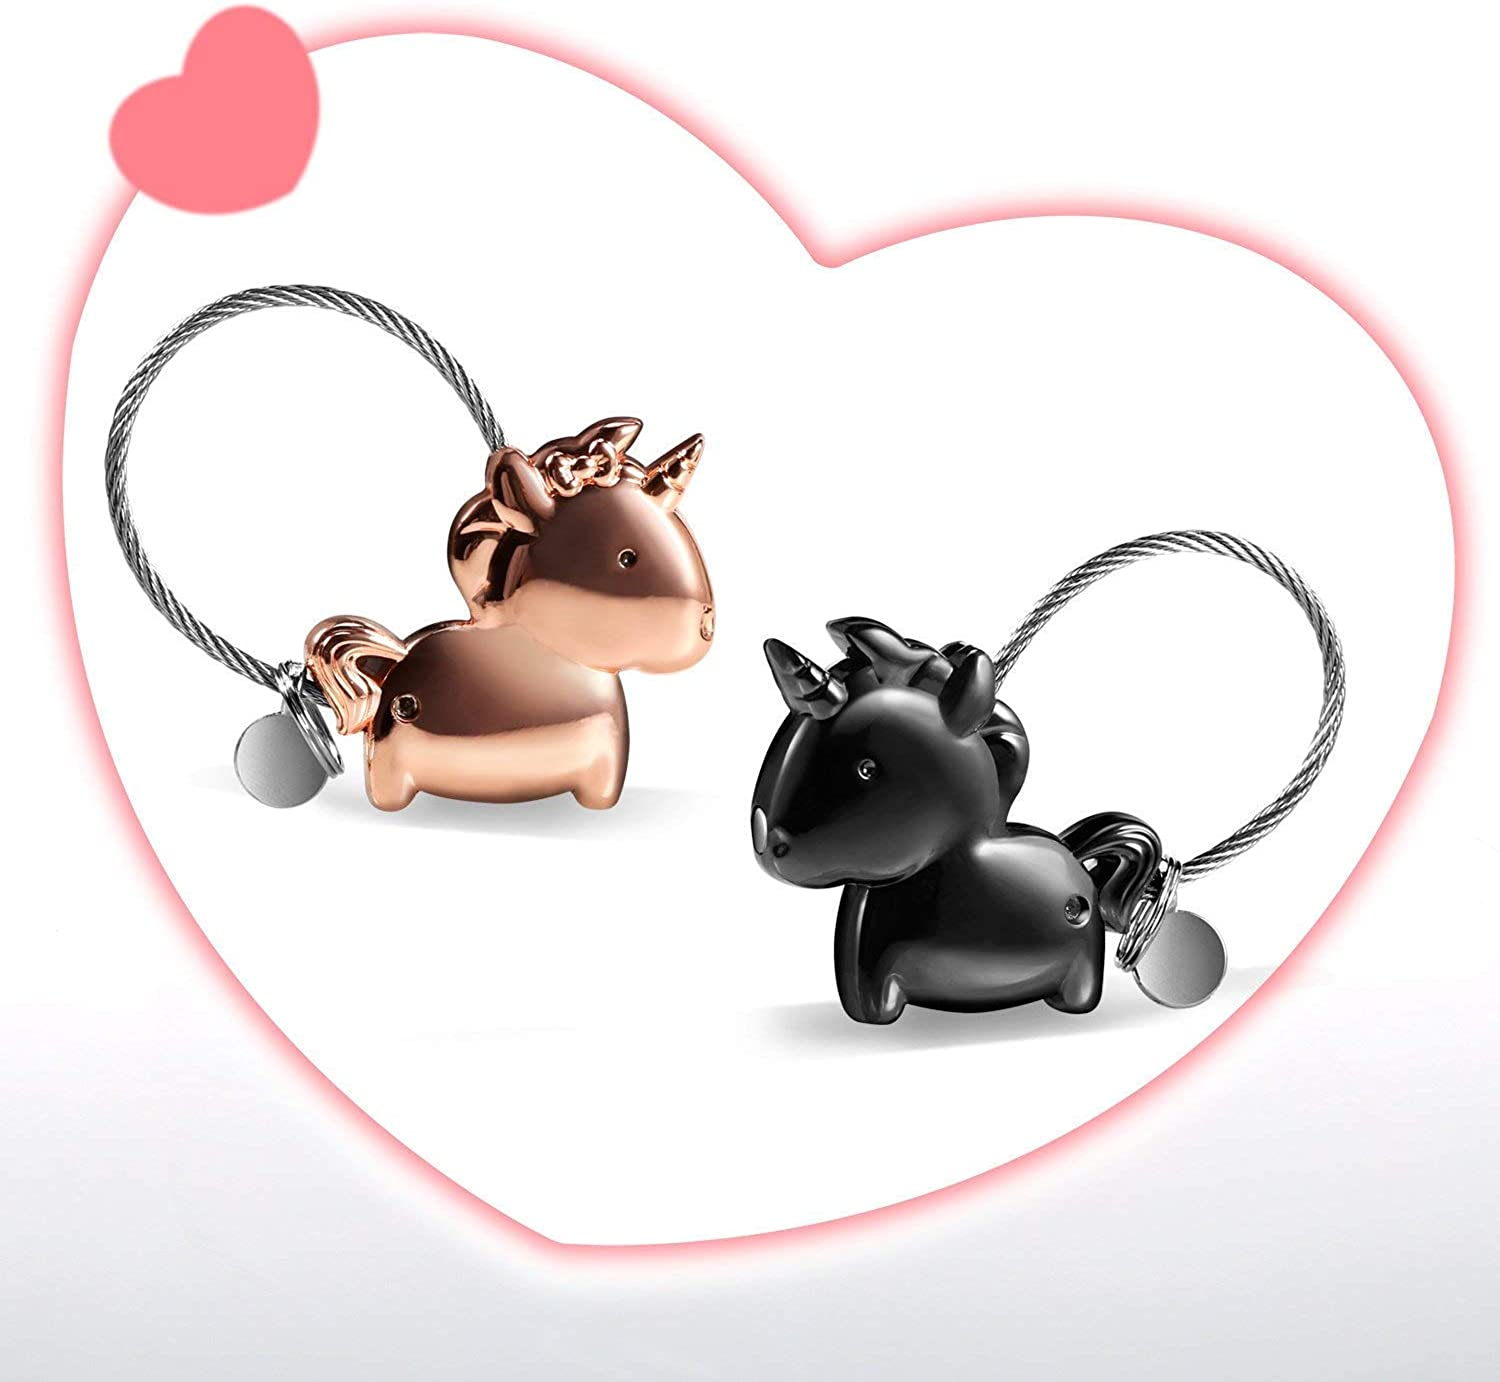 Zinc Alloy Key Chain Shiny LHKJ Keyring Kissing Unicorn Keychain with Magnetic for Couple Lovers Sweet Gift for Valentines Christmas Wedding Black and Rosegold